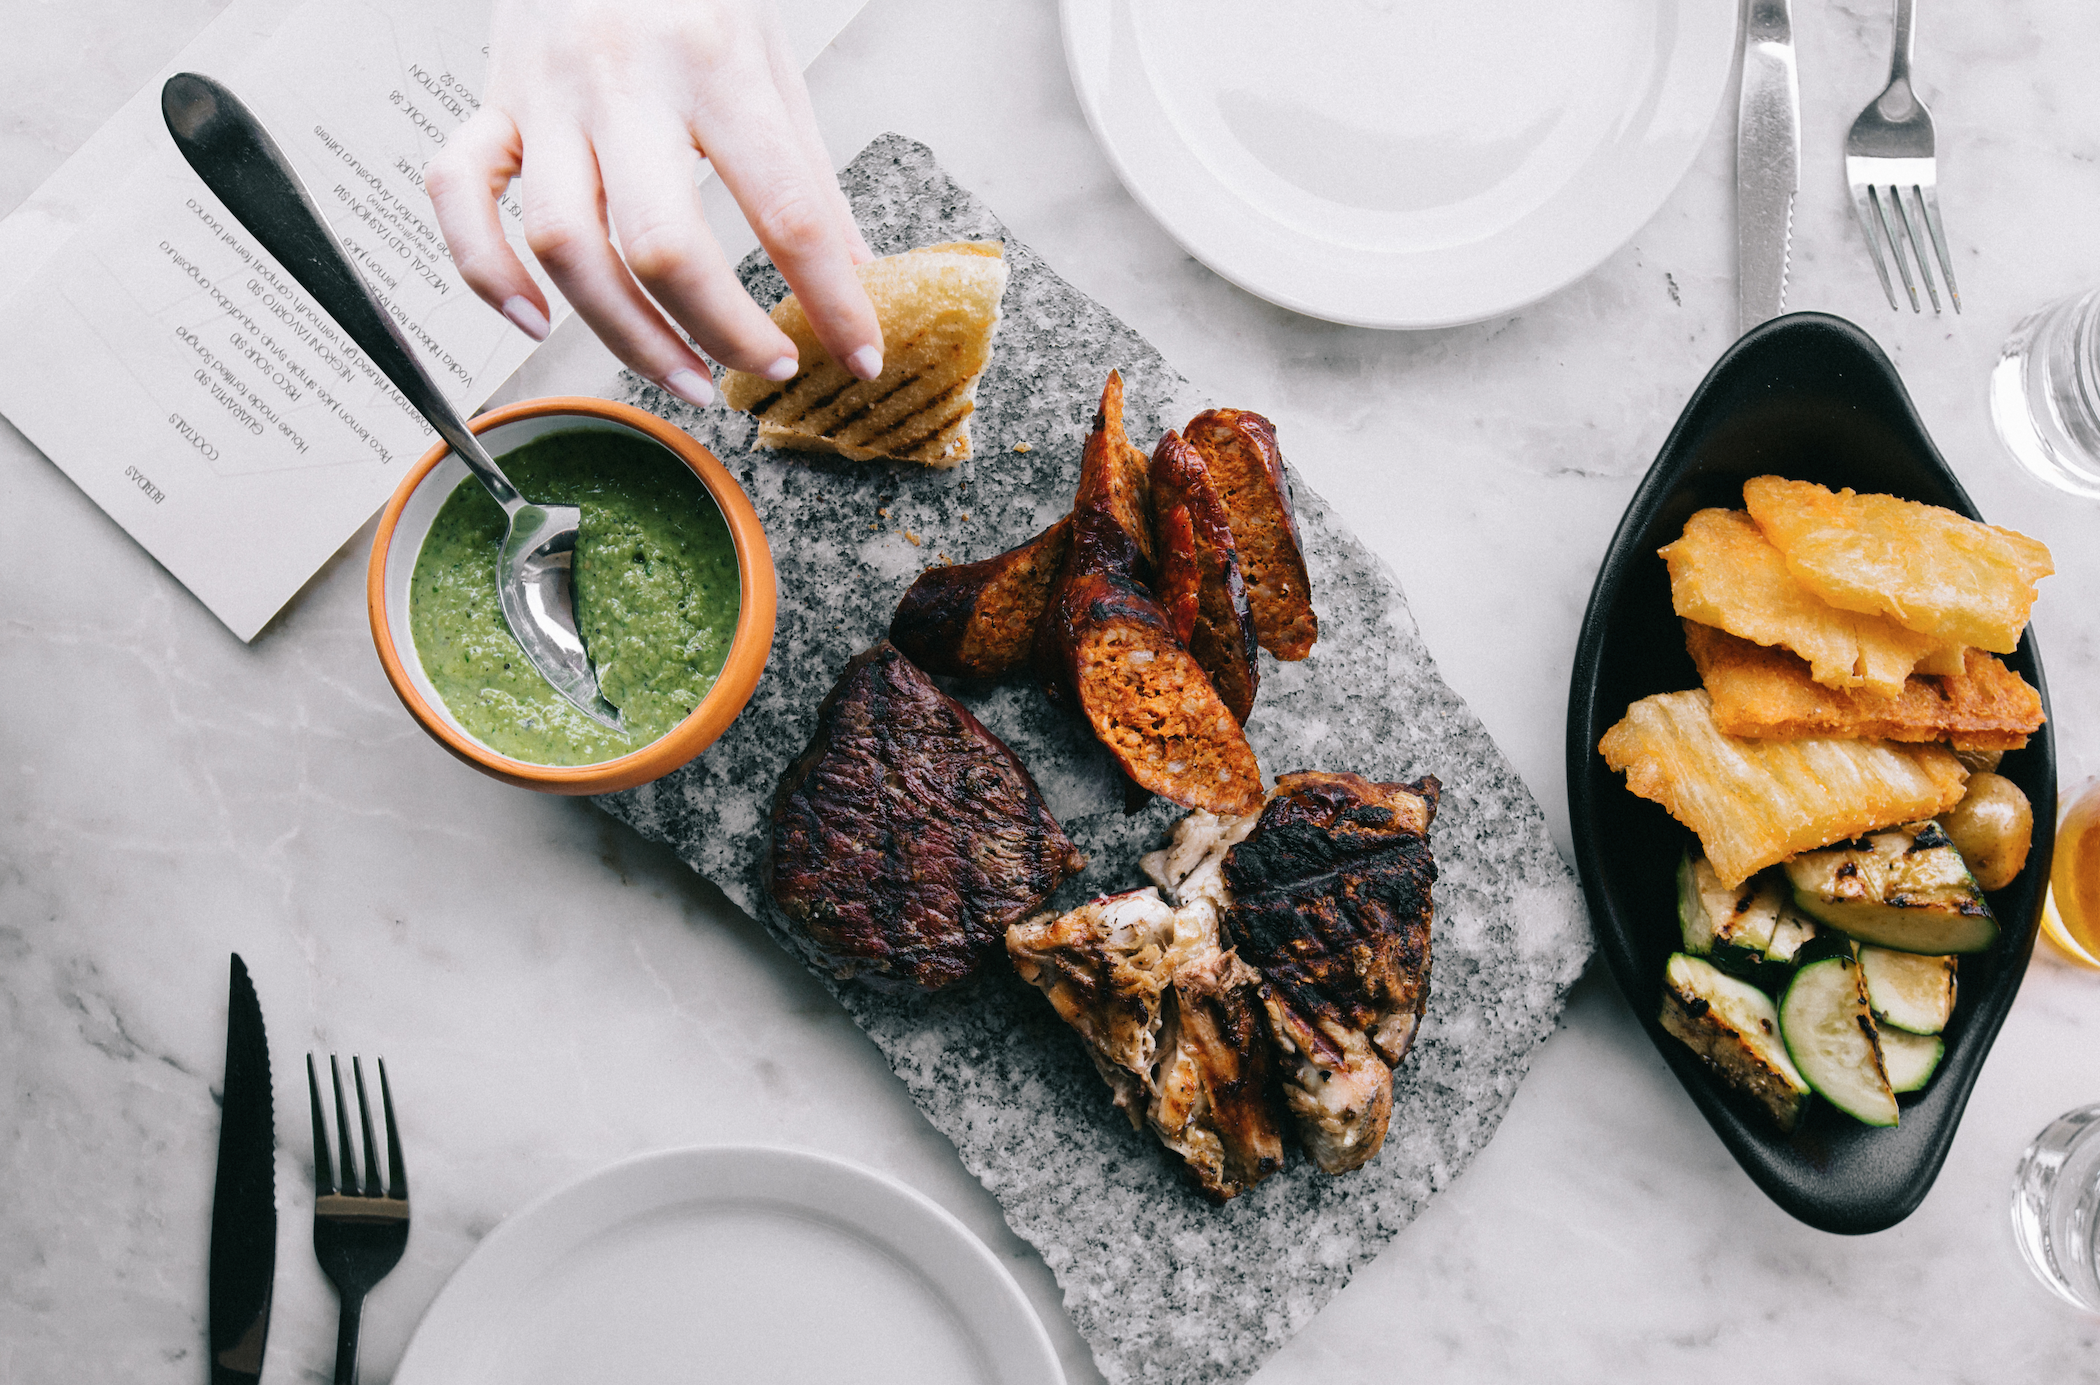 Cacao Restaurant fires up Latin American style barbecue